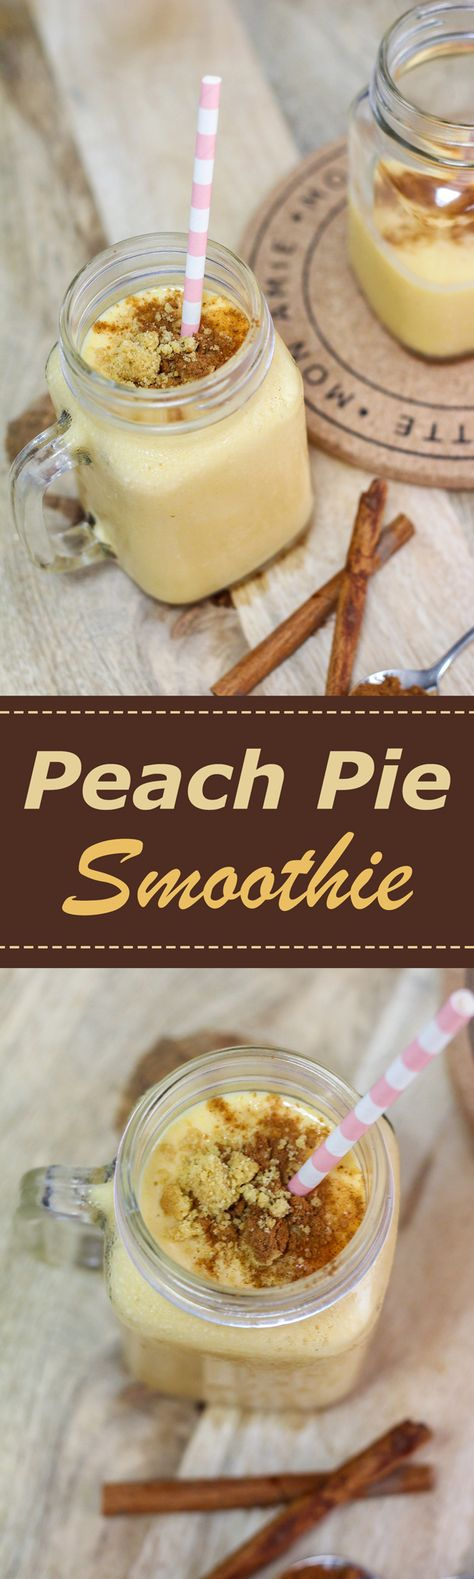 A smoothie that has all the flavors of a peach pie!